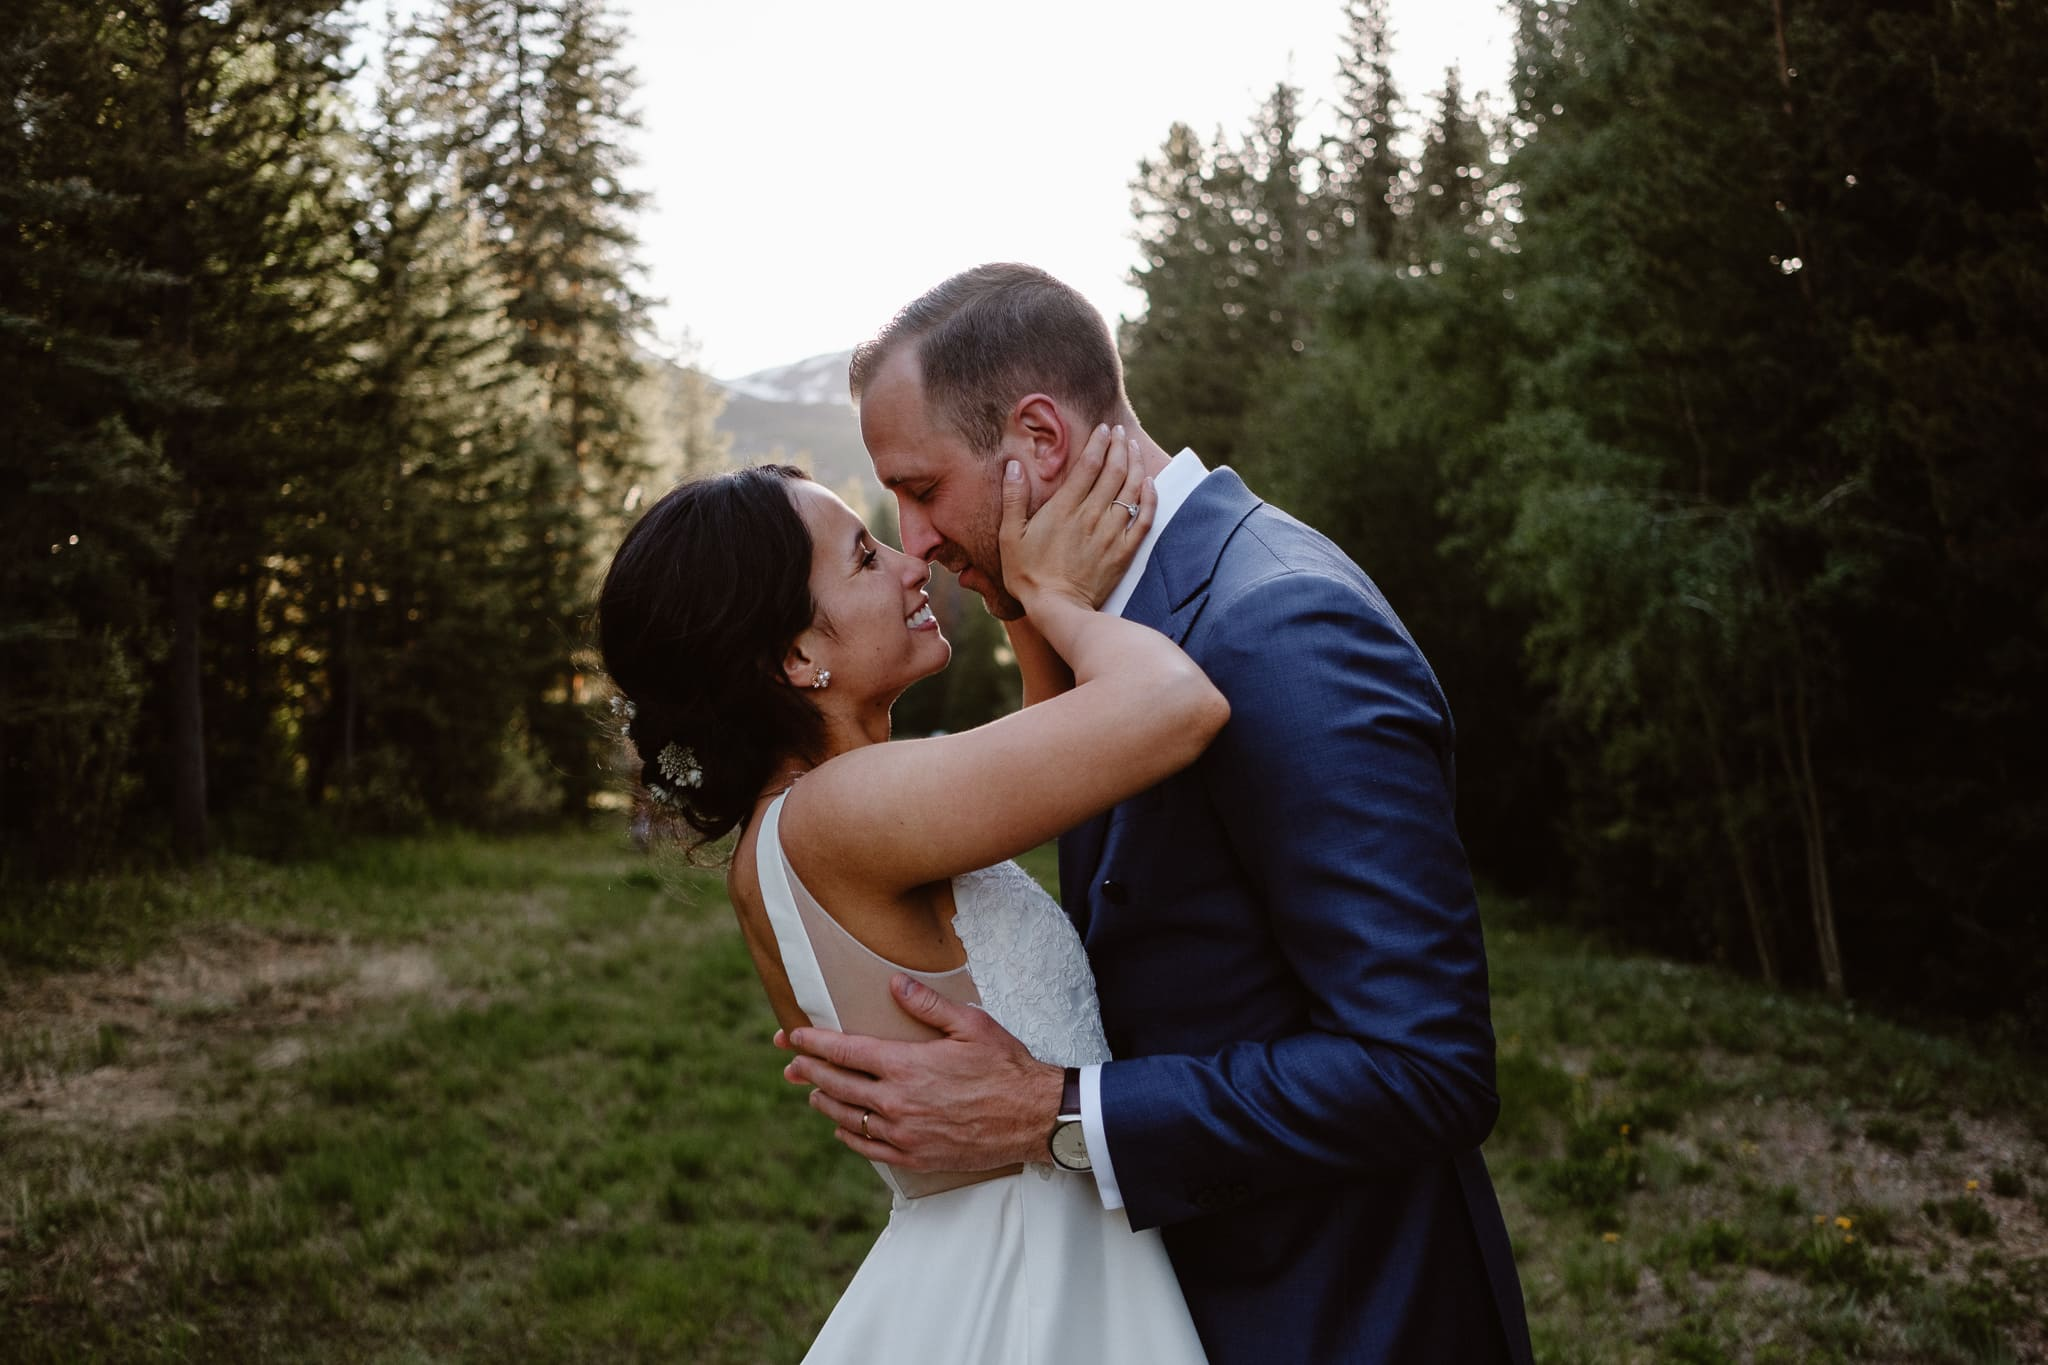 Breckenridge Nordic Center Wedding Photographer, bride and groom portraits in woods at golden hour, Summit County wedding photographer